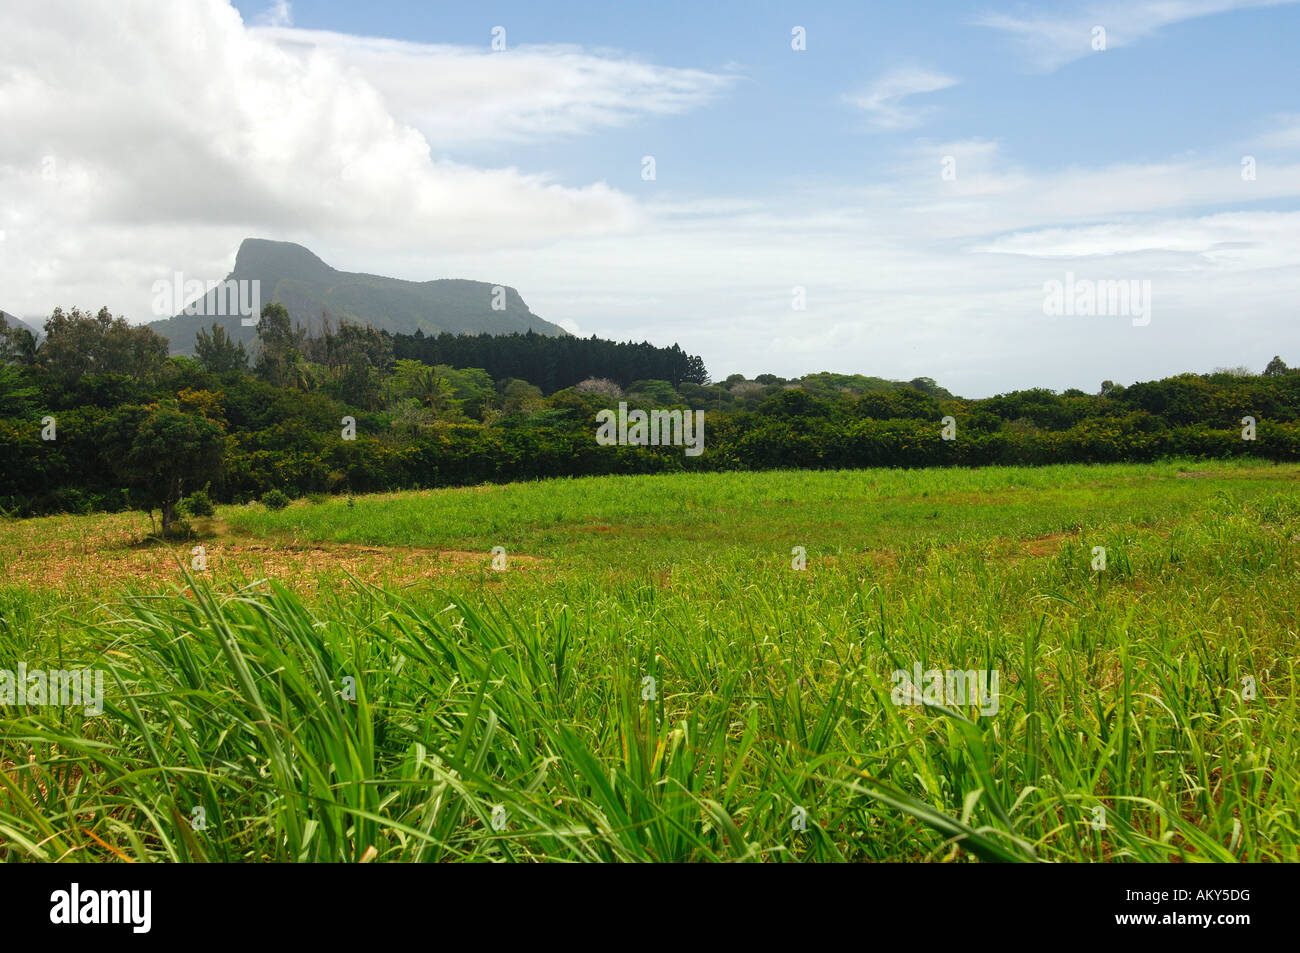 Landscape with sugar cane field, Mauritius - Stock Image